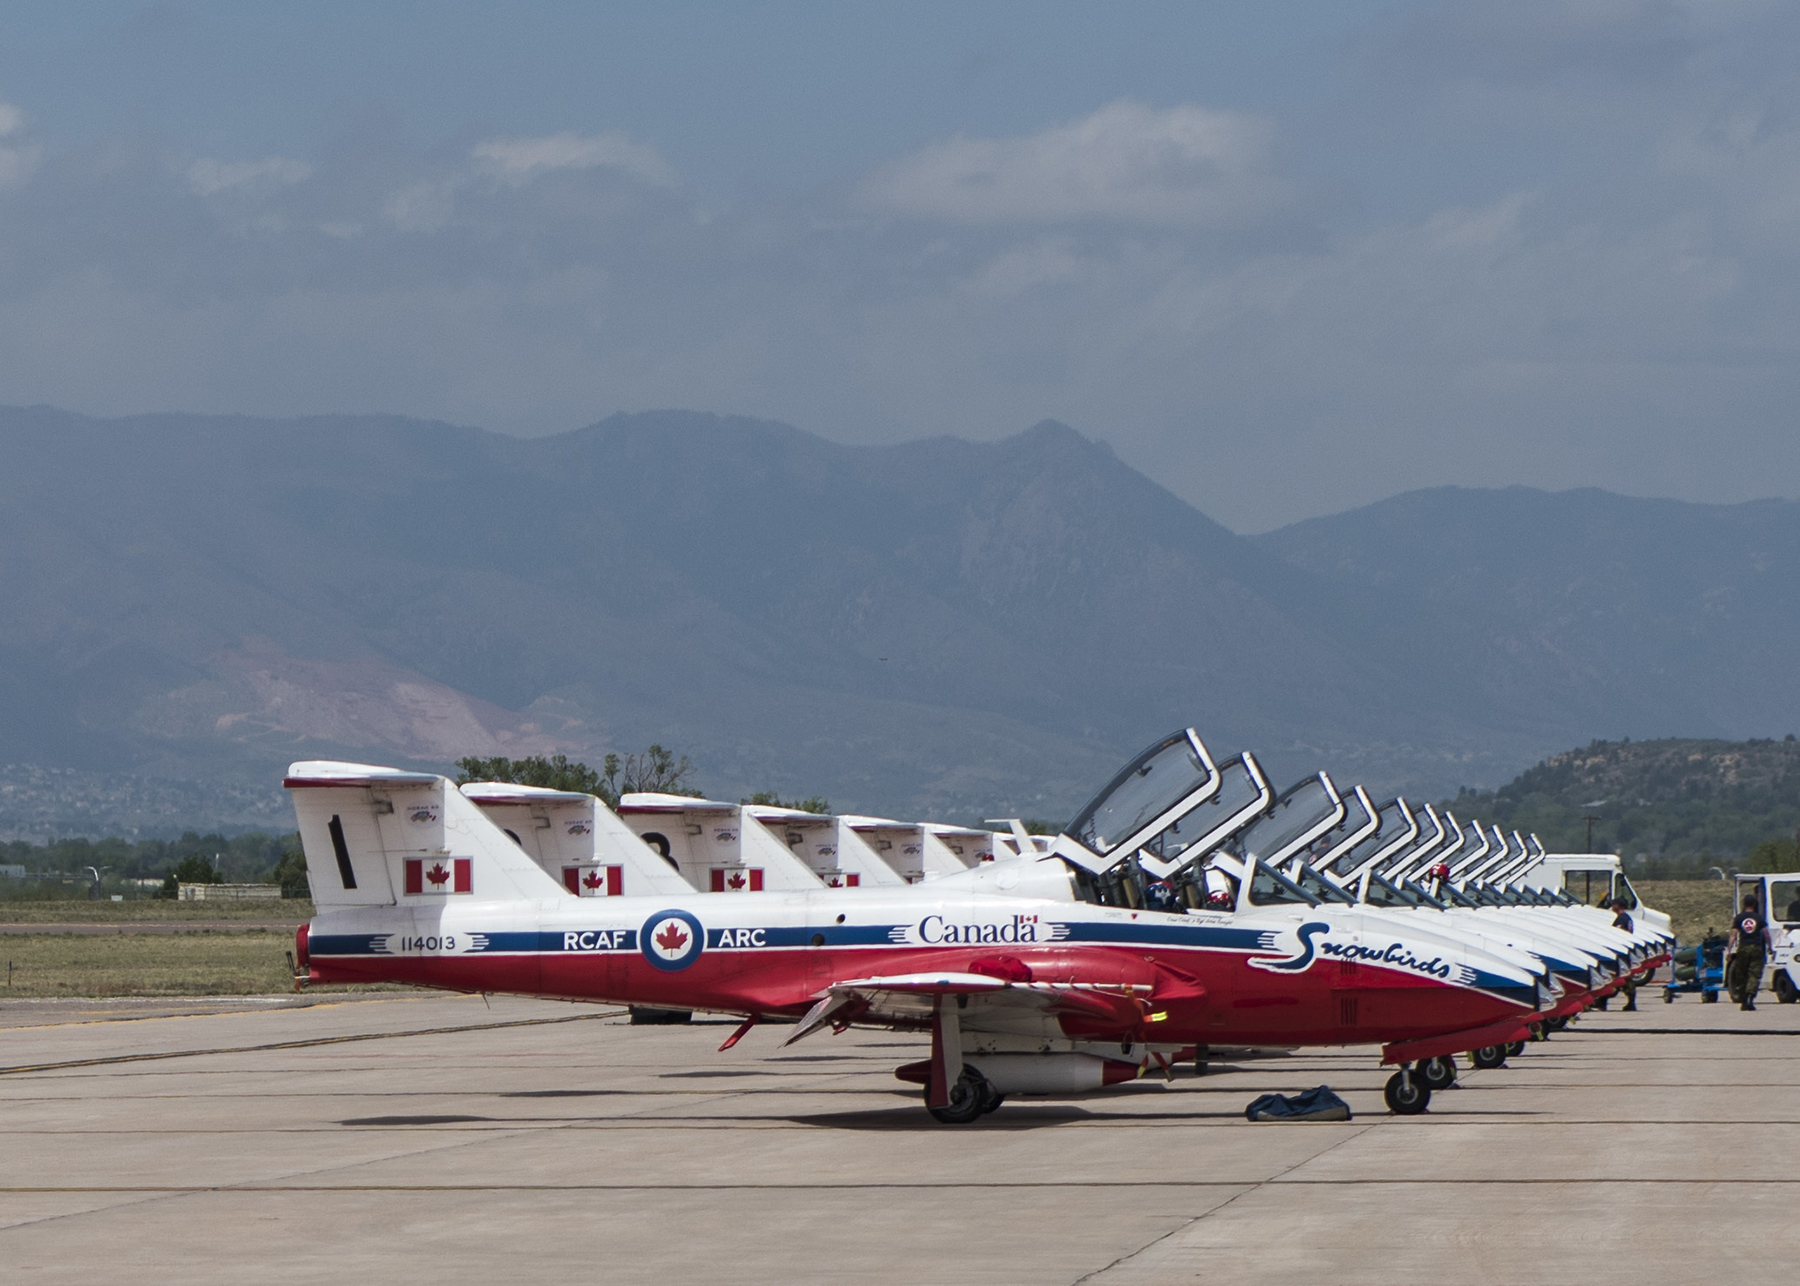 On the flight line at Peterson Air Force Base, Colorado, the Canadian Forces Snowbirds aerial demonstration team is ready to fly its part during the 60th anniversary celebration of the North American Aerospace Defense Command (NORAD) on May 12, 2018. PHOTO: U.S. DoD, Staff Sergeant Emily Kenney